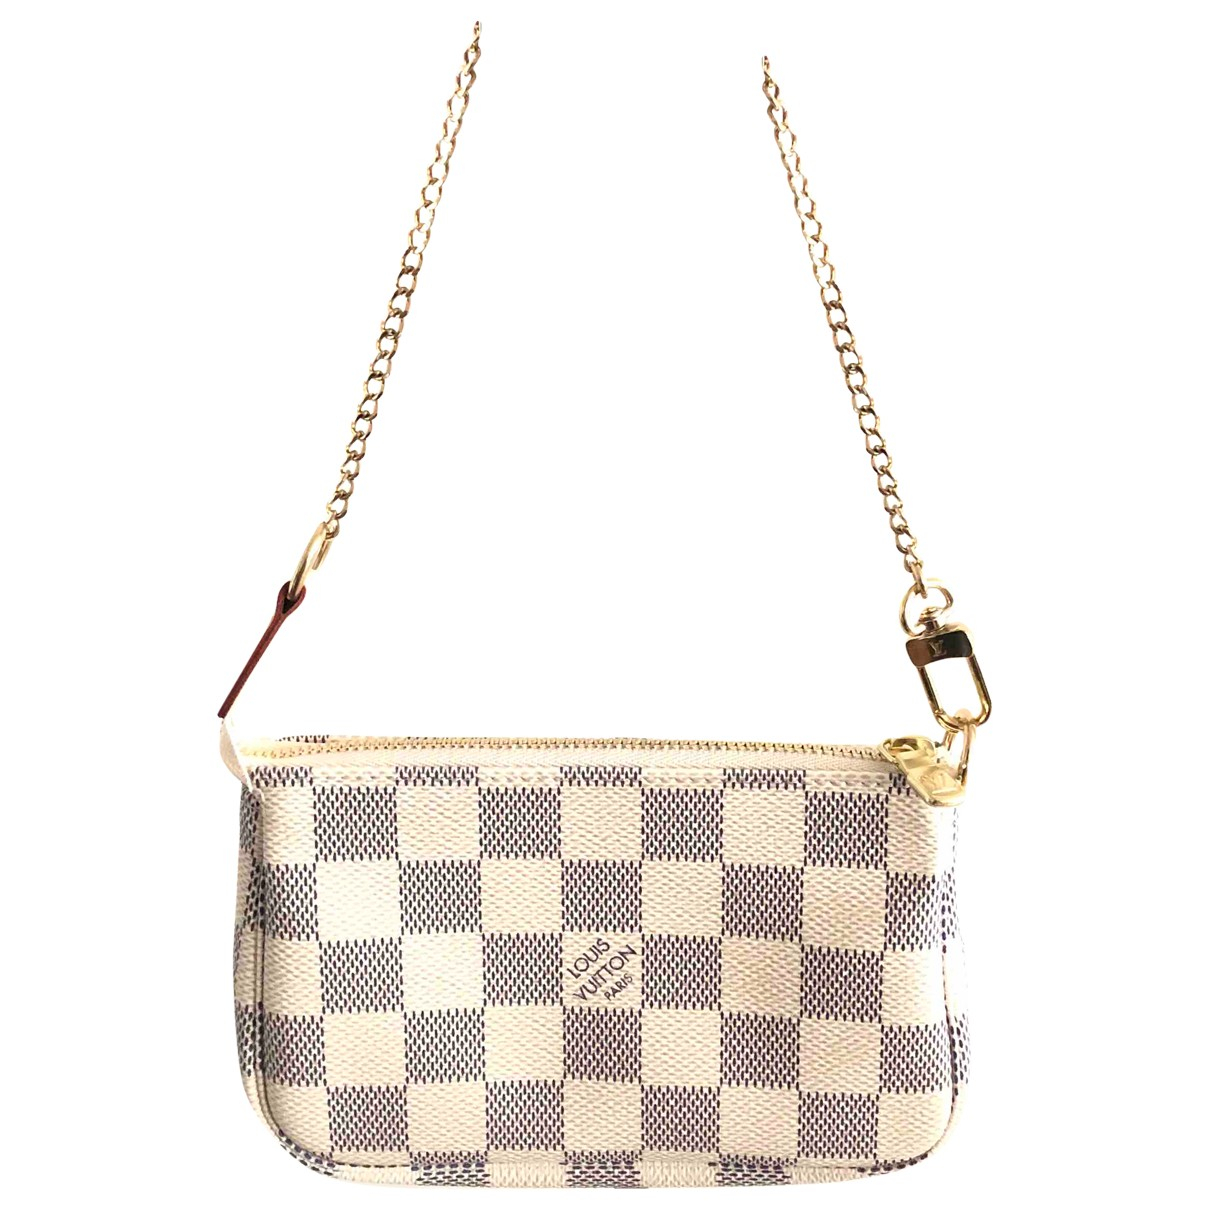 Louis Vuitton Pochette Accessoire Beige Cloth Clutch bag for Women \N